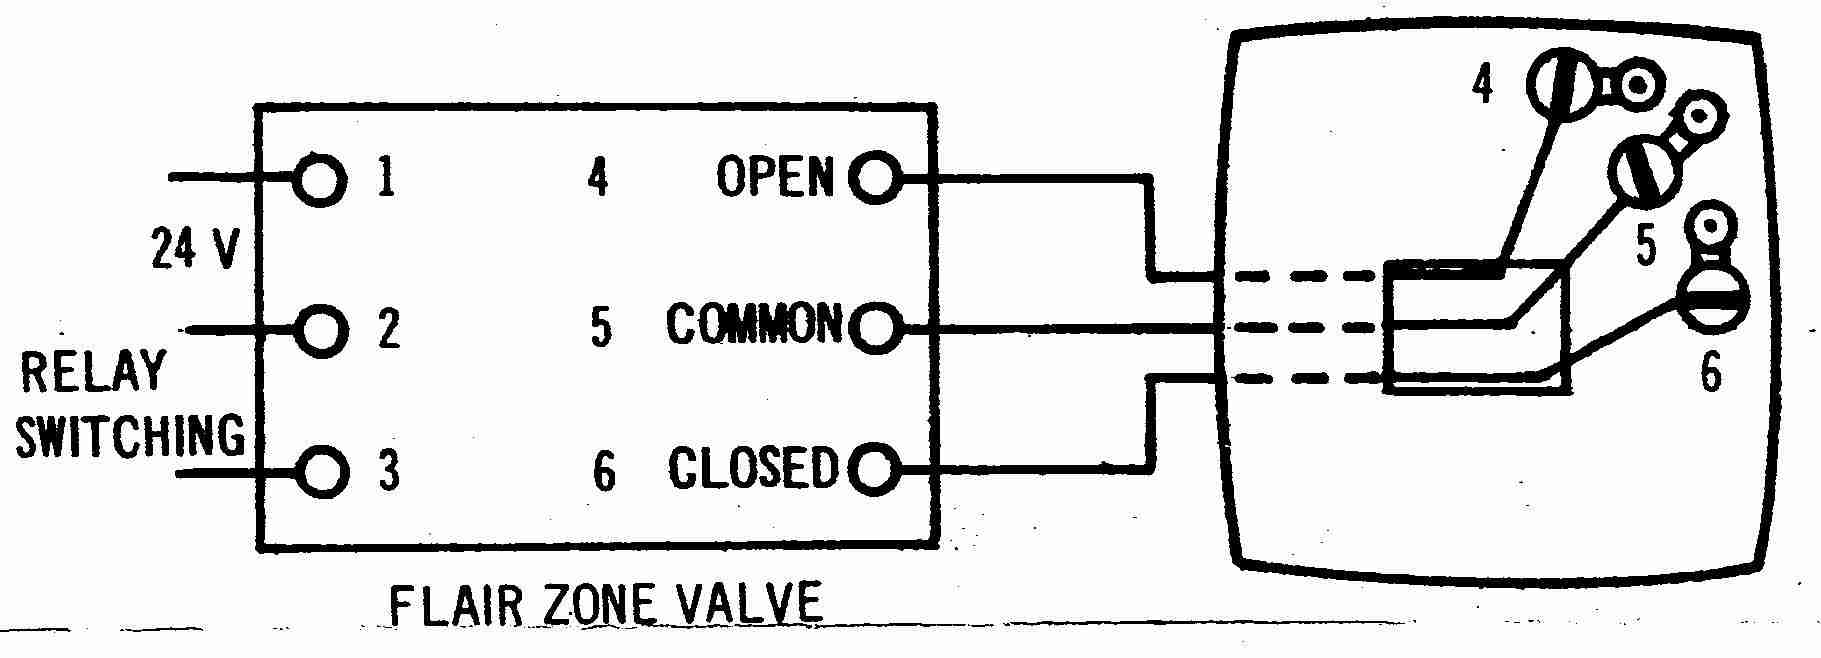 Flair3w_001_DJFc2 zone valve wiring installation & instructions guide to heating wilo pump wiring diagram at gsmportal.co